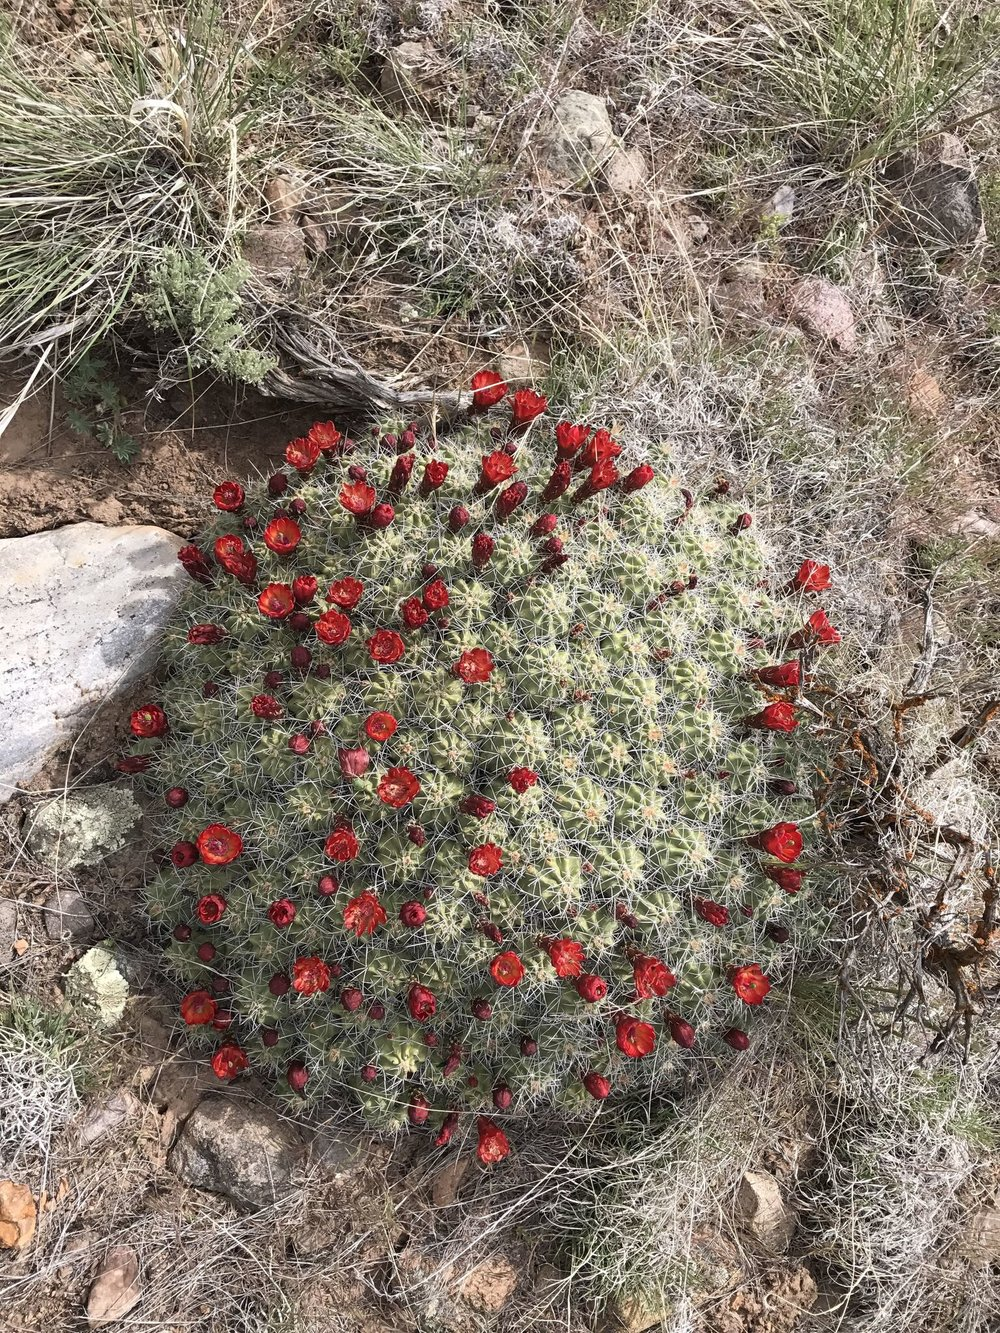 May 21 - Neighborhood Claret Cup Cactus